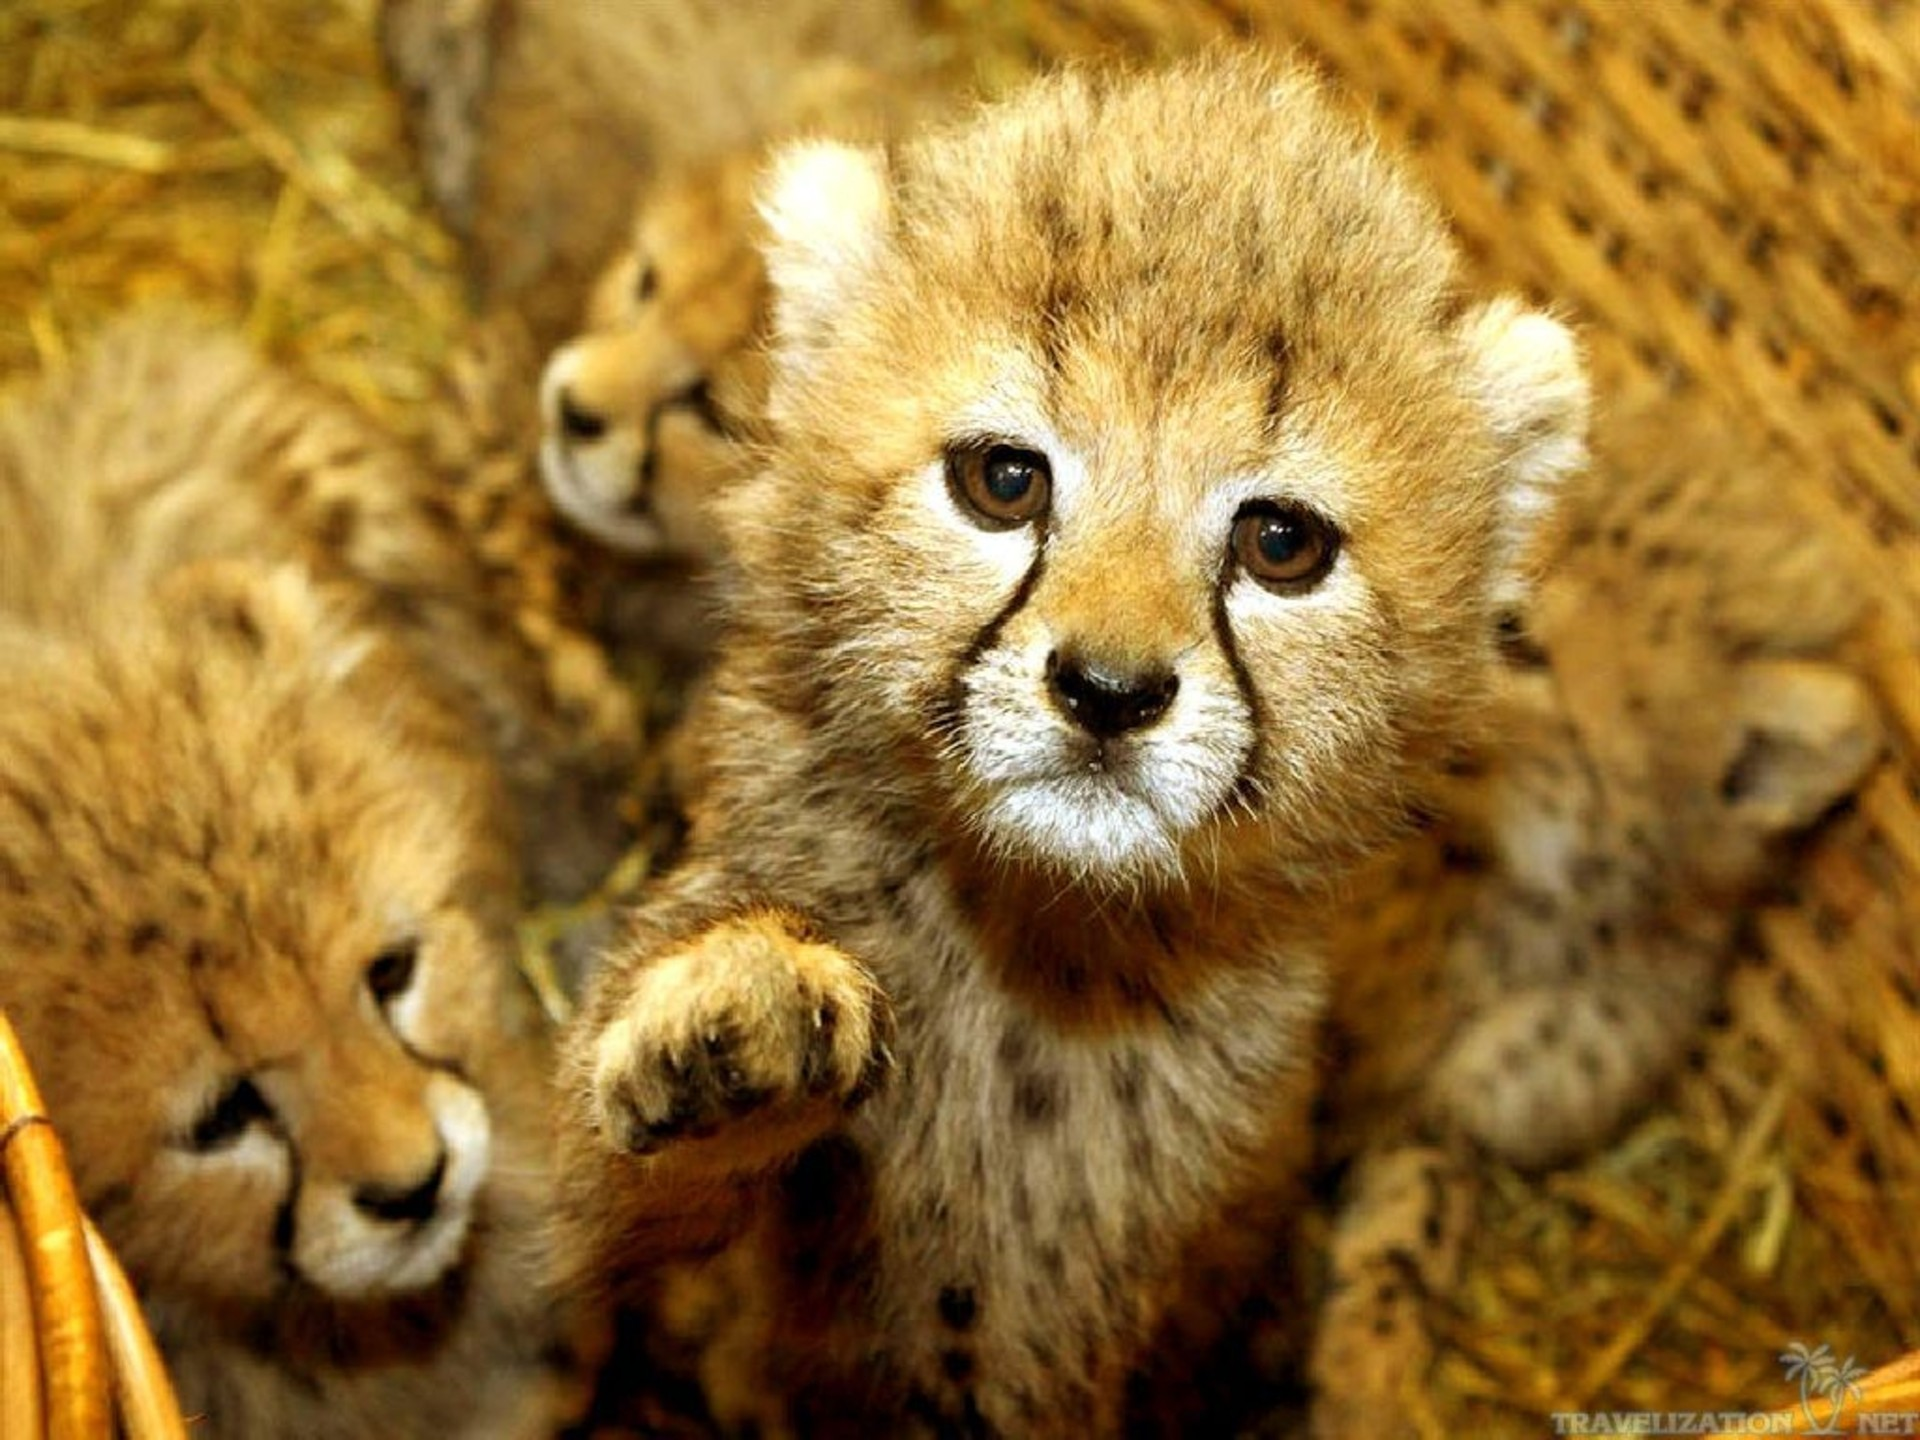 Cute Baby Animal Wallpaper ·①